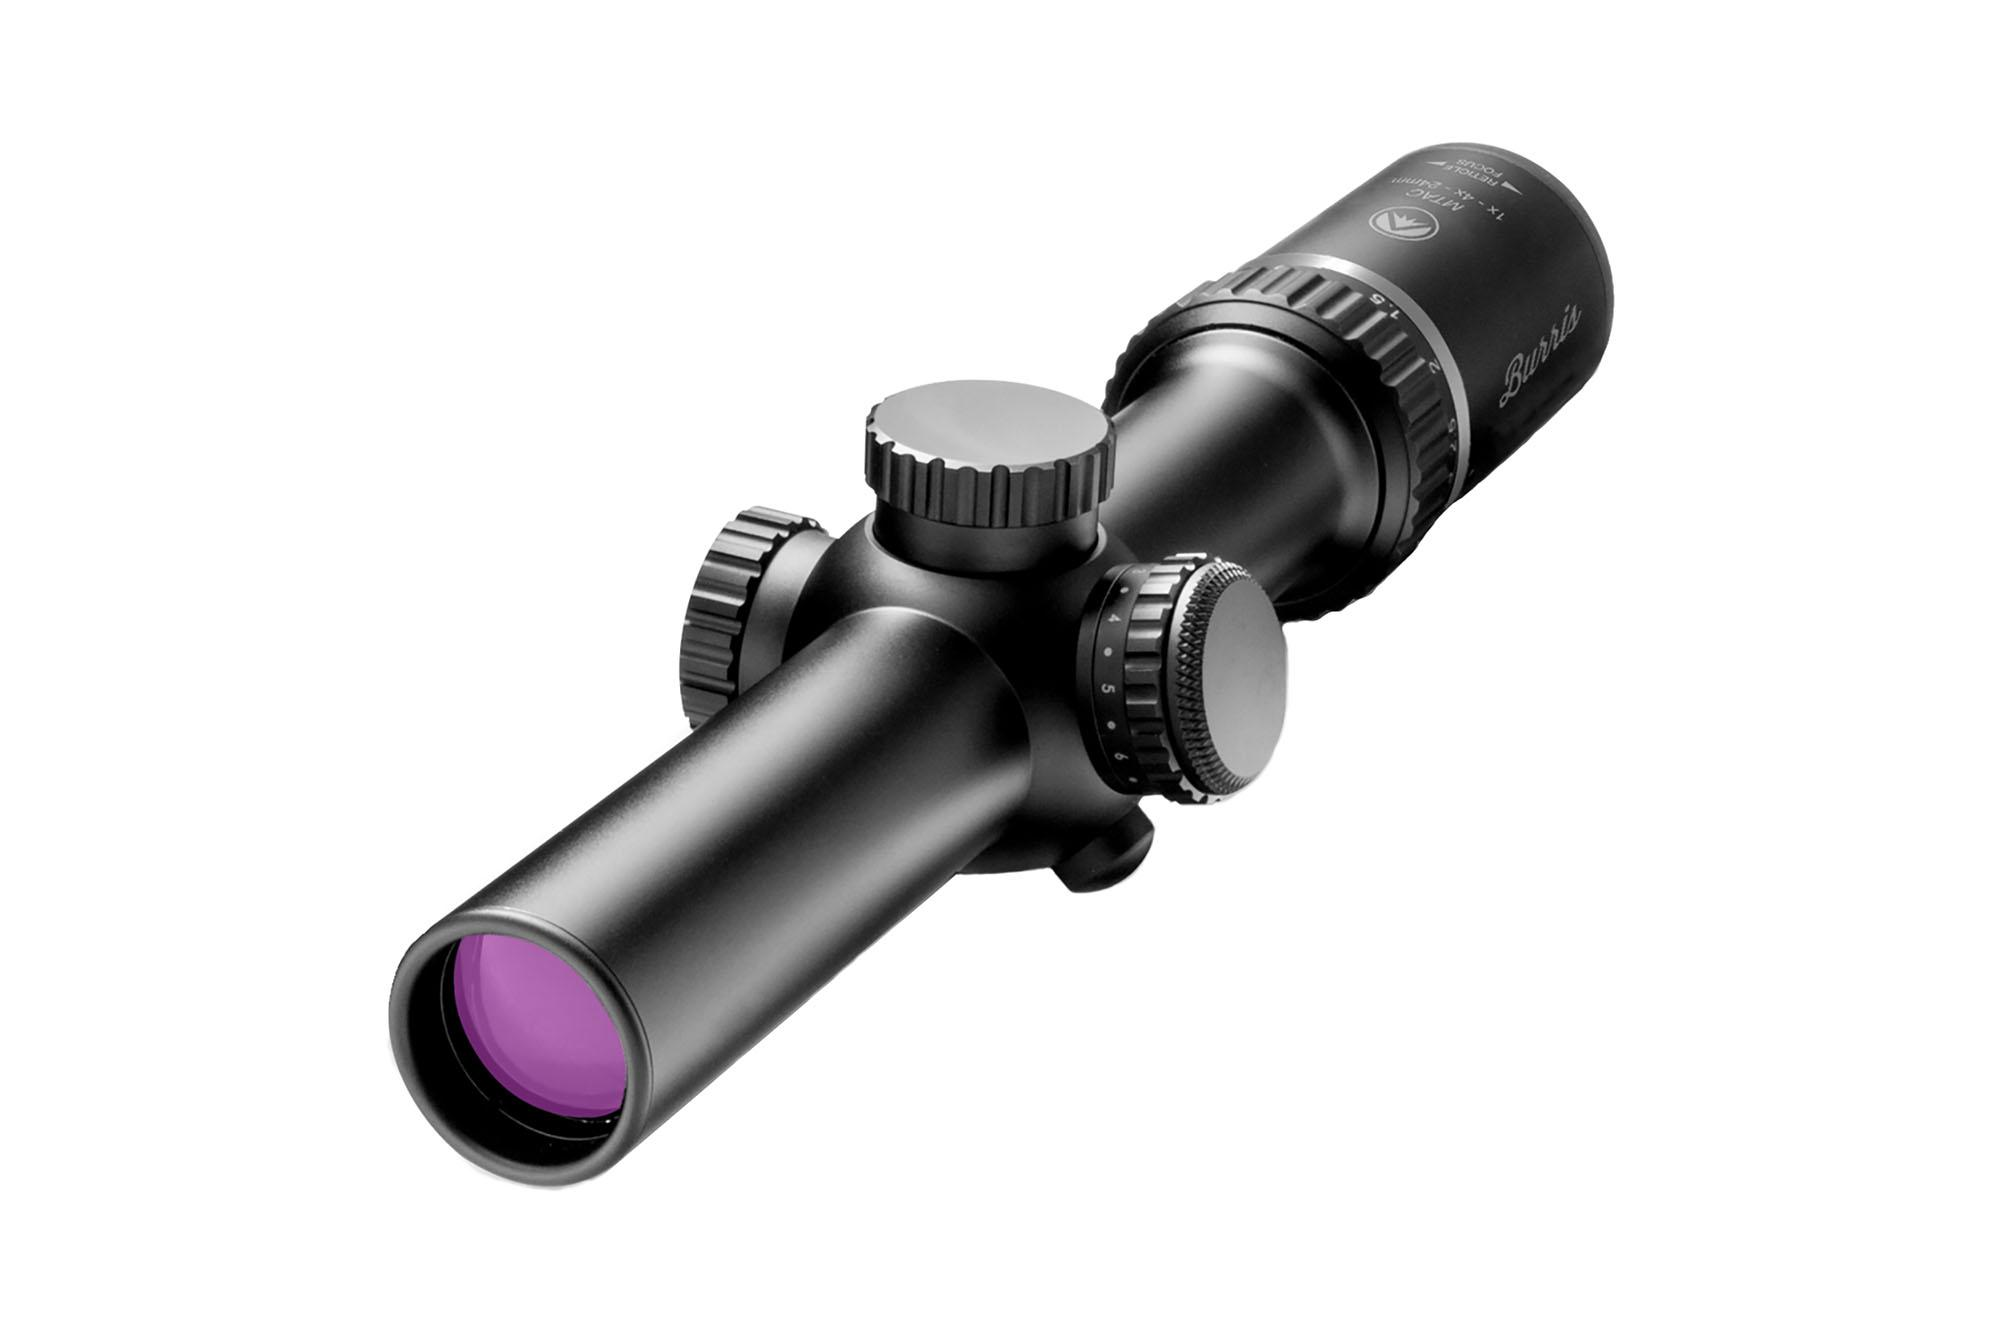 Burris Optics MTAC Riflescope 1-4x24mm - Ballistic CQ Reticle